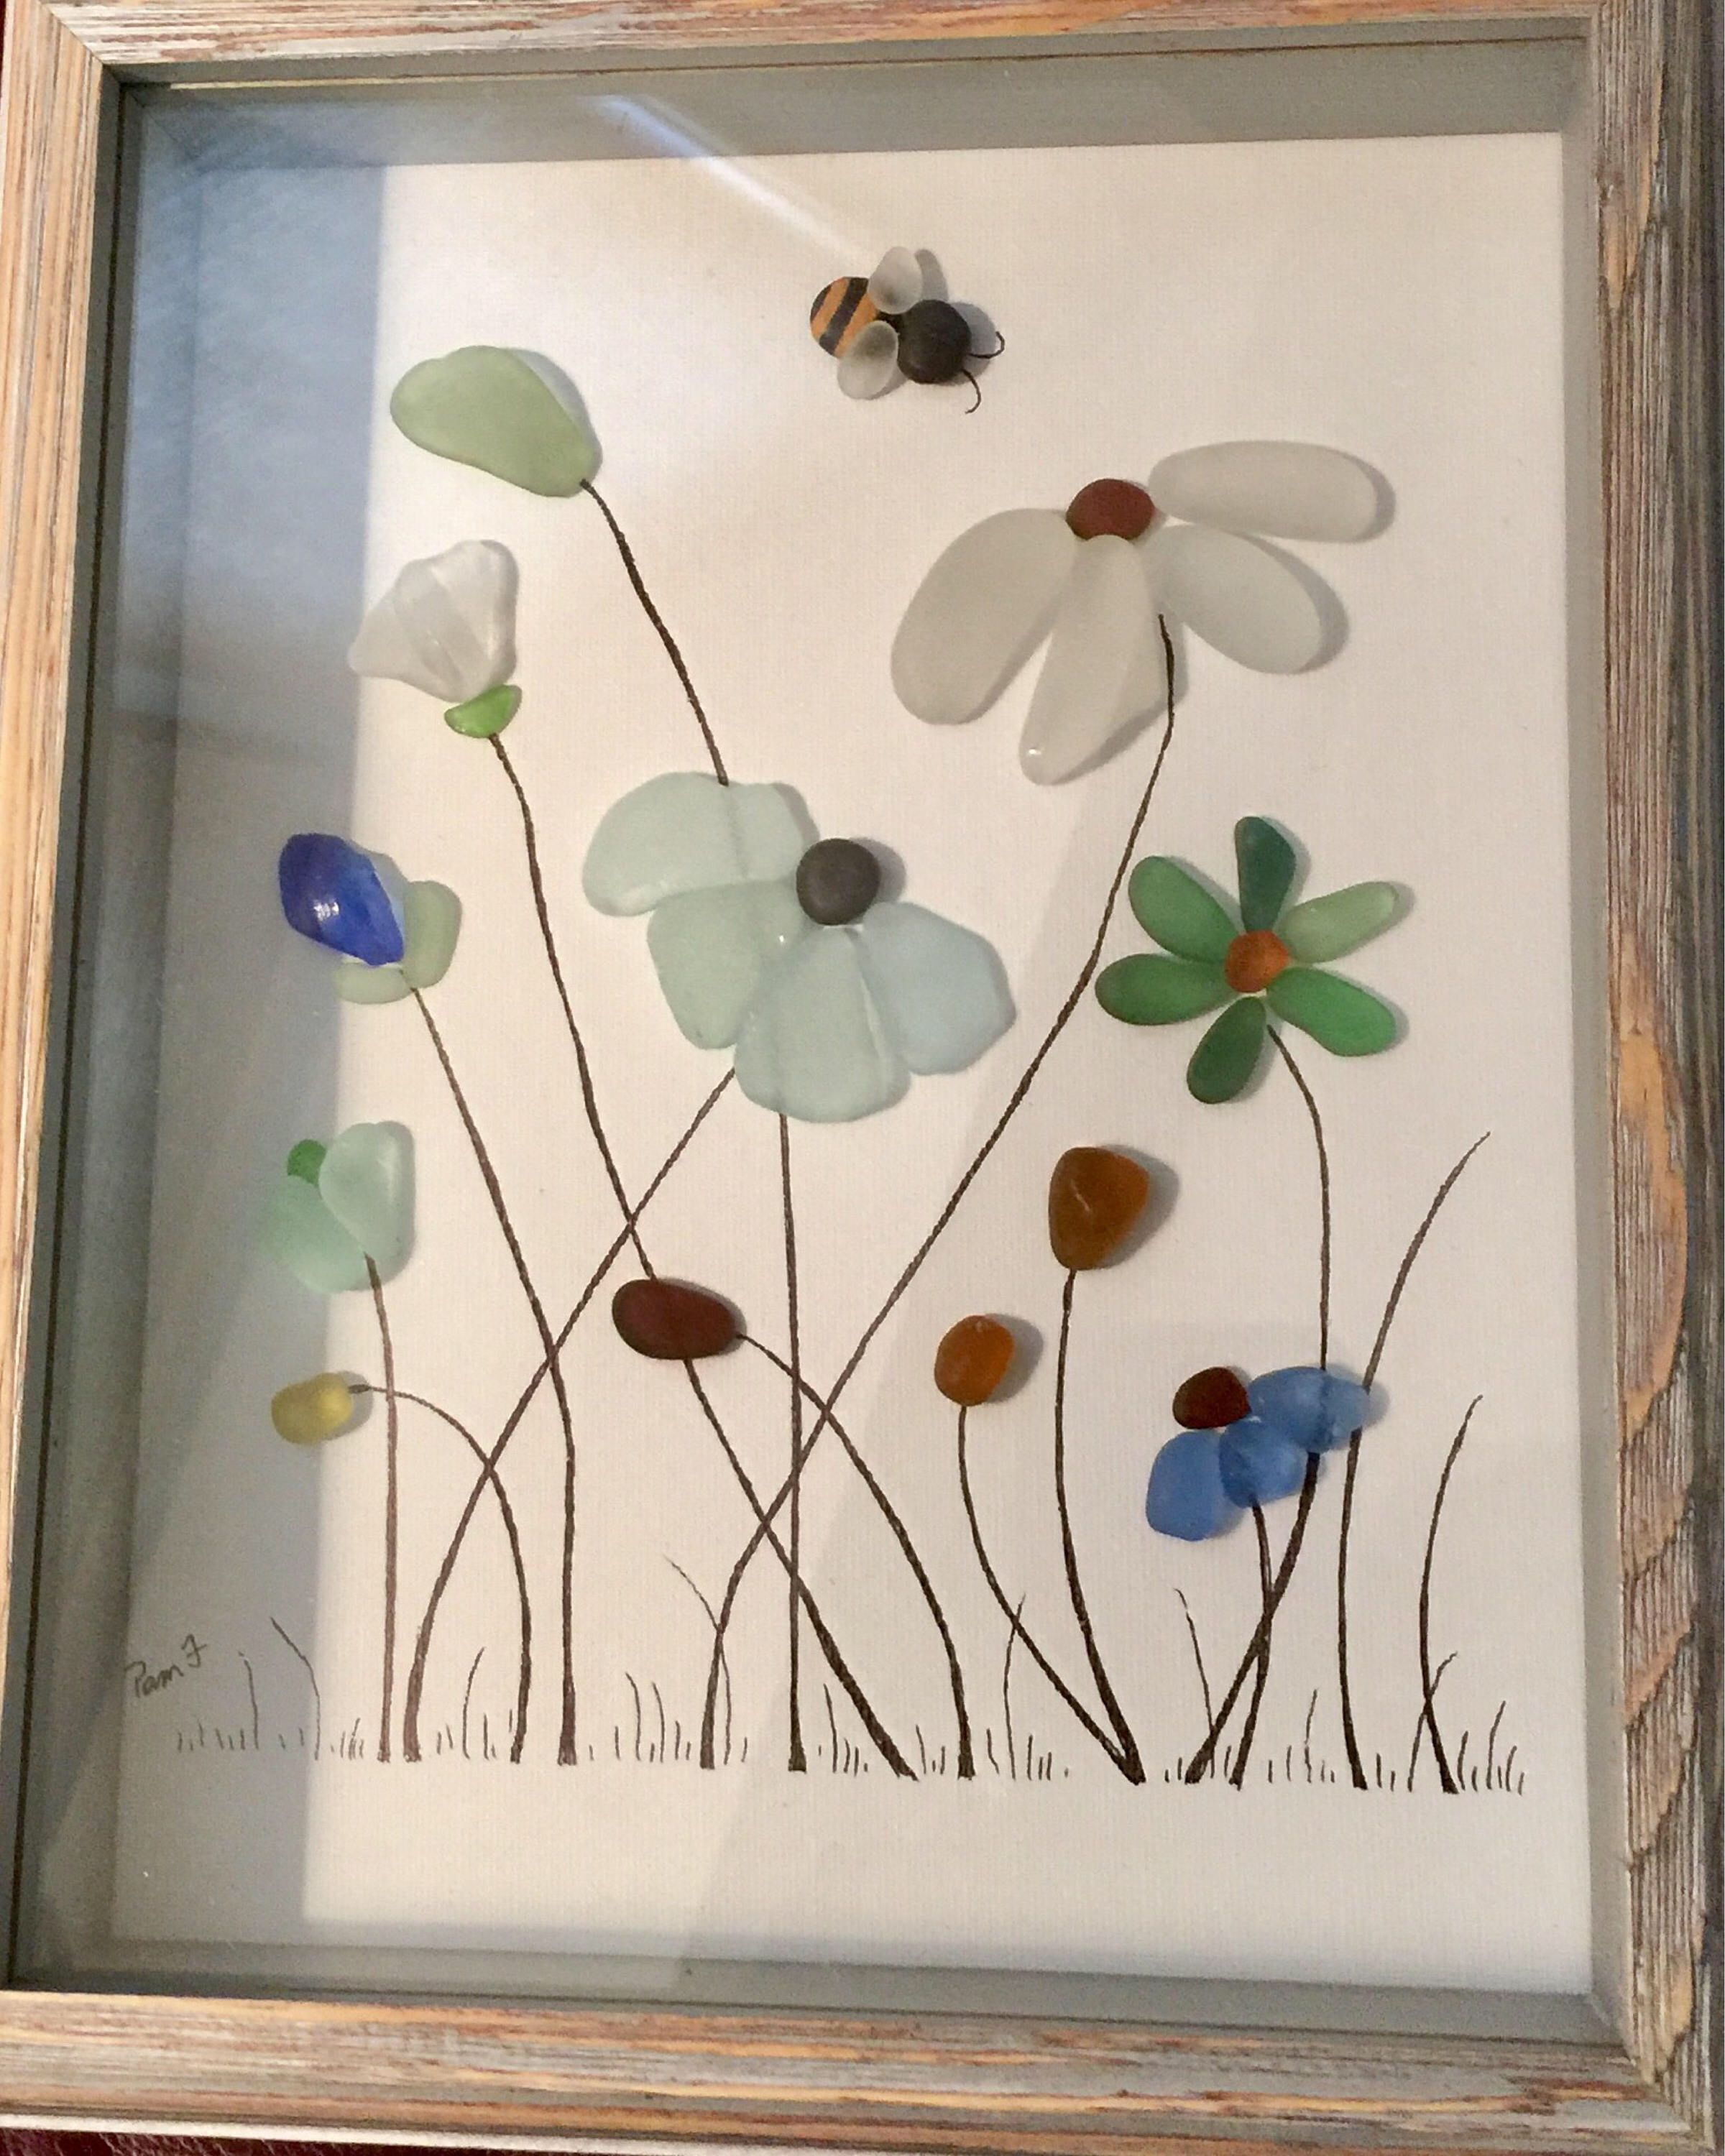 Photo of Genuine Sea Glass Framed Artwork Flowers Picture Bumble Bee